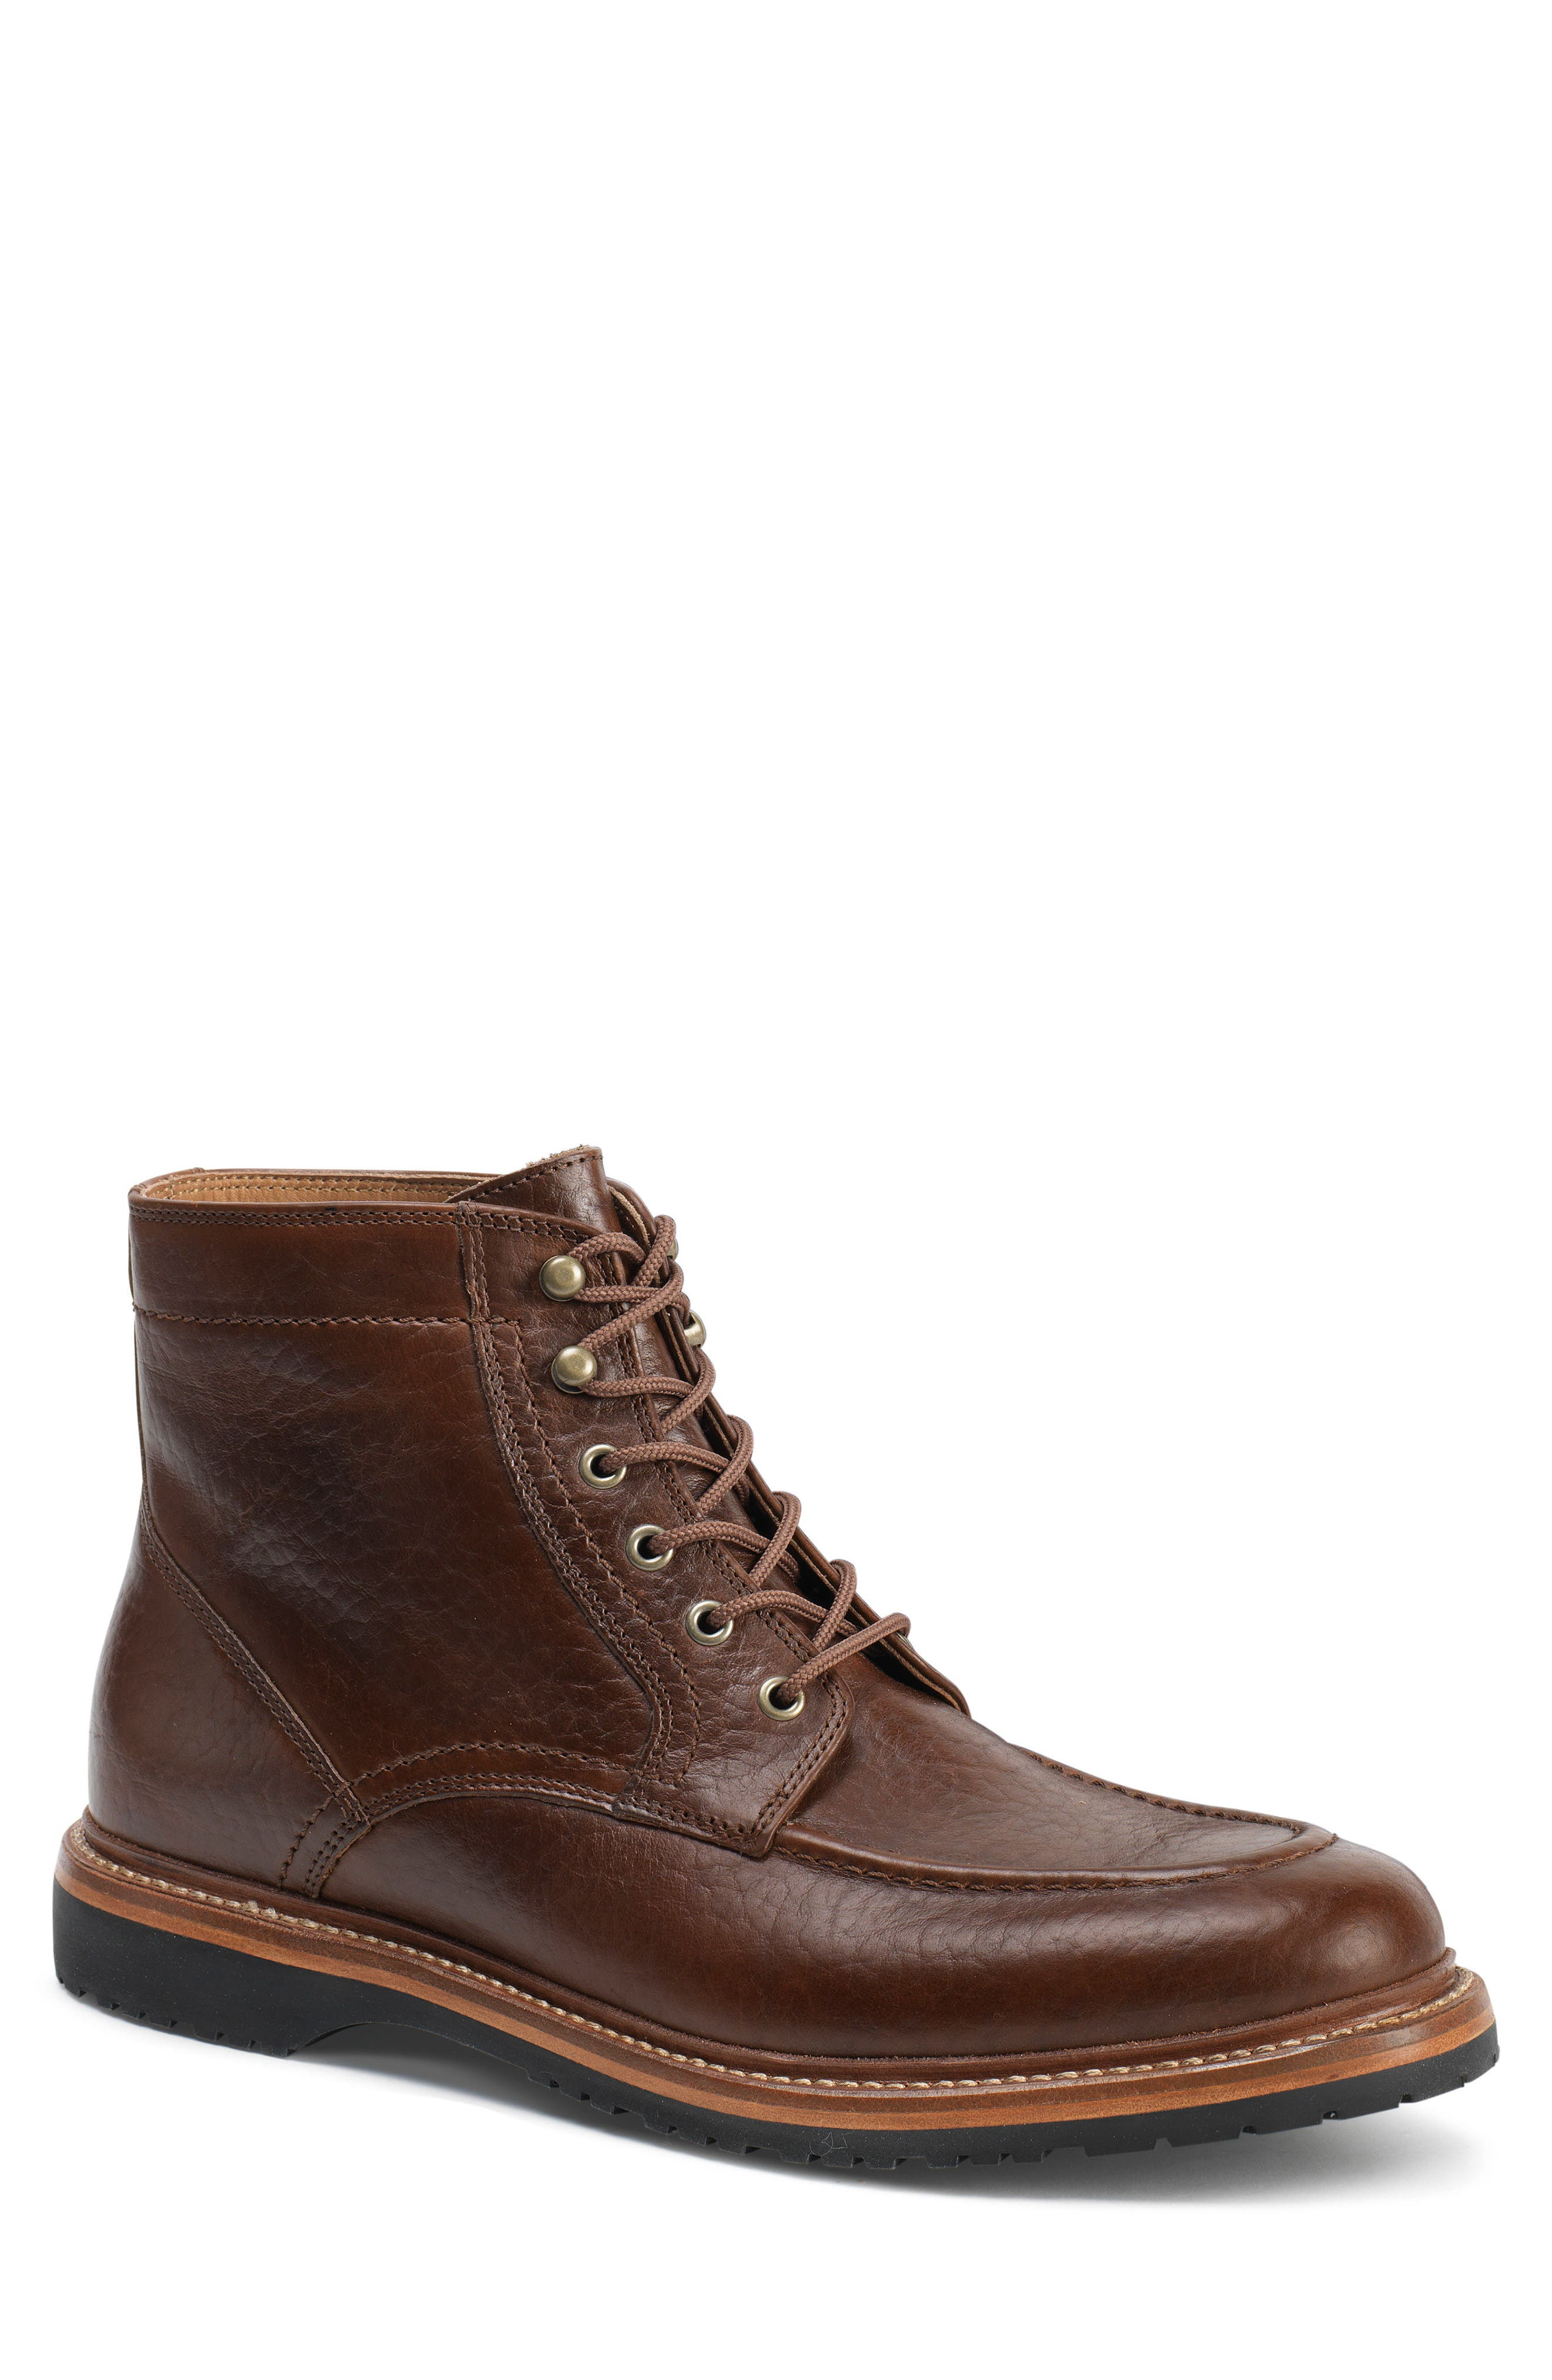 TRASK 'Andrew Mid' Apron Toe Boot, Main, color, BOURBON